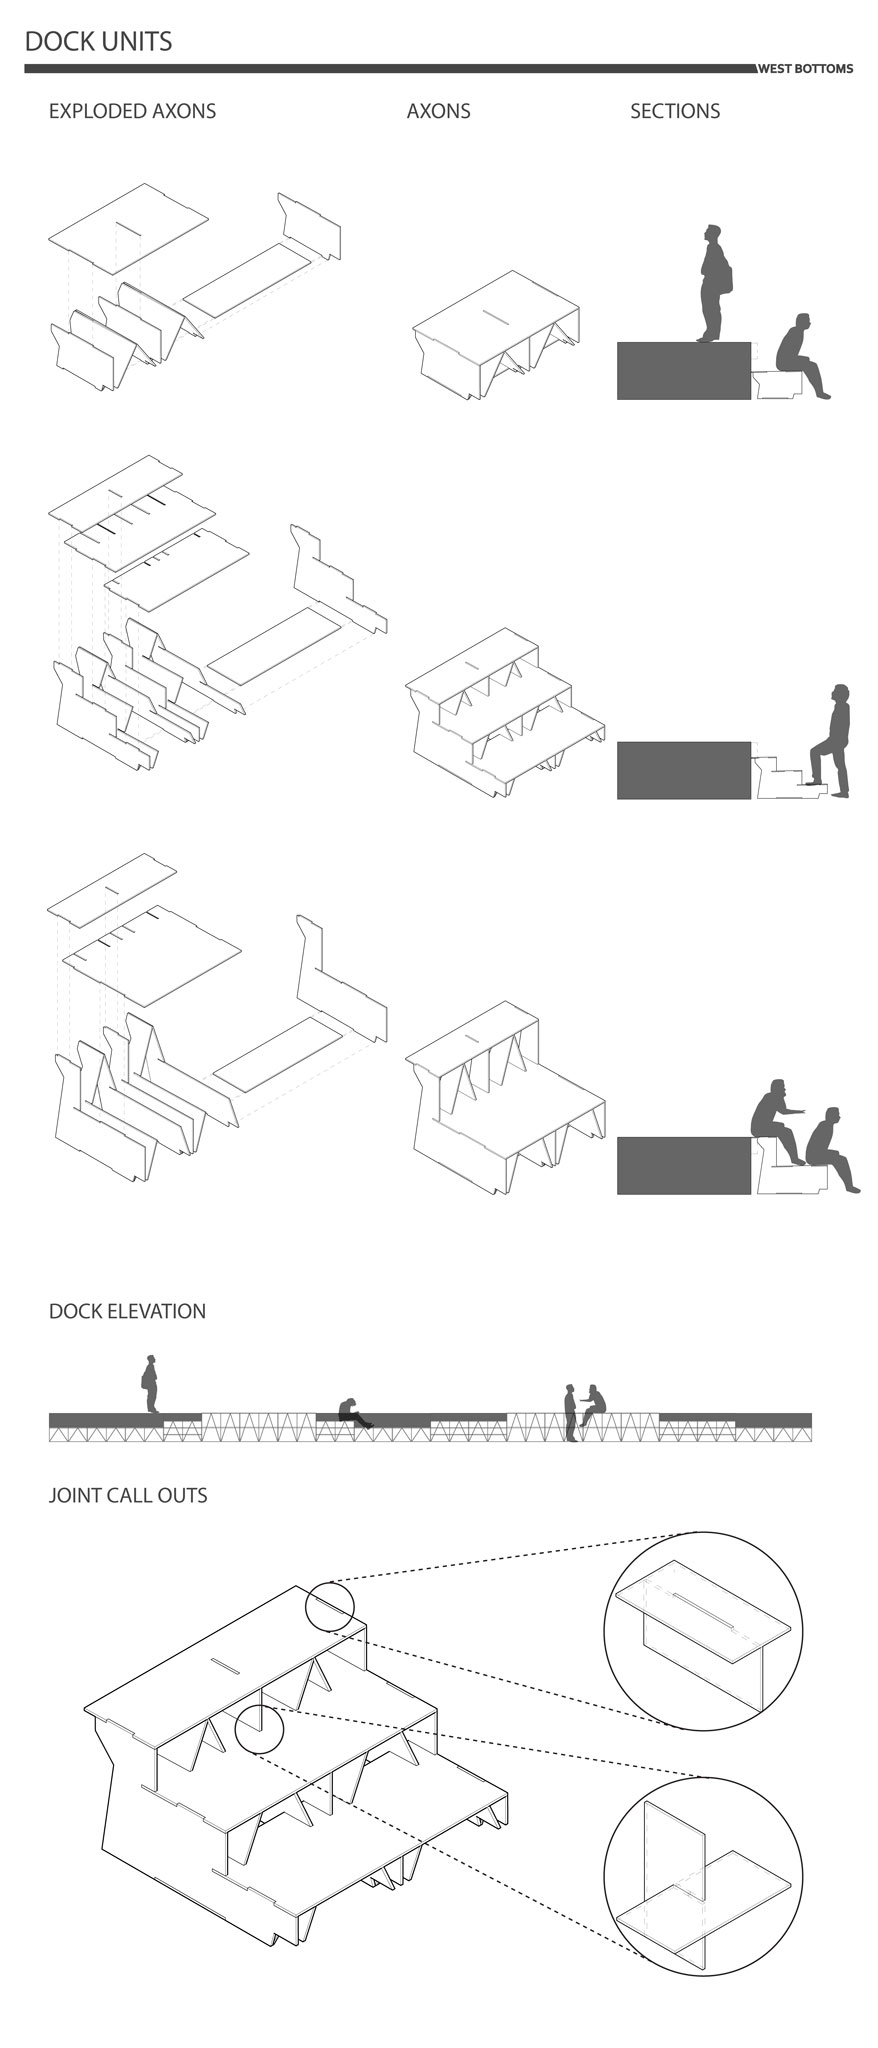 Wall-Layout-36_84---DOCK-LAYOUT.jpg